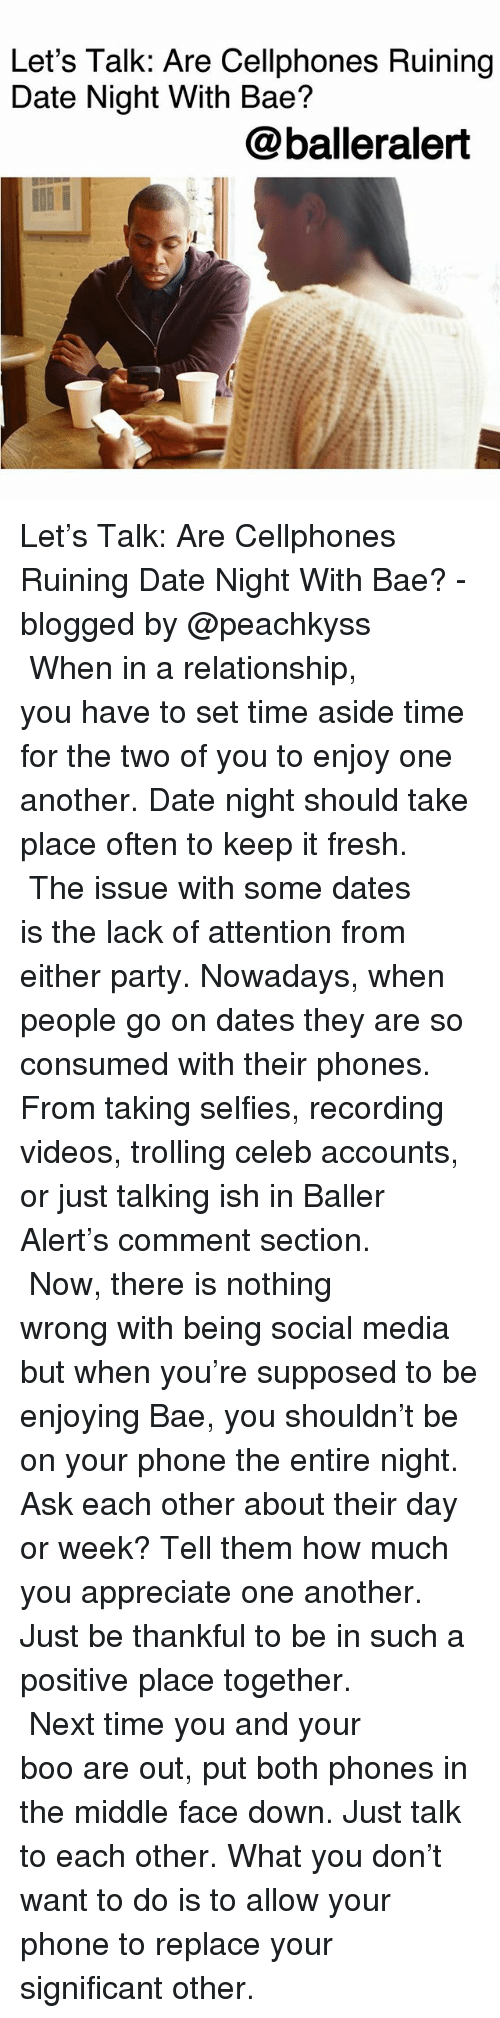 Bae, Baller Alert, and Boo: Let's Talk: Are Cellphones Ruining  Date Night With Bae?  @balleralert Let's Talk: Are Cellphones Ruining Date Night With Bae? -blogged by @peachkyss ⠀⠀⠀⠀⠀⠀⠀ ⠀⠀⠀⠀⠀⠀⠀ When in a relationship, you have to set time aside time for the two of you to enjoy one another. Date night should take place often to keep it fresh. ⠀⠀⠀⠀⠀⠀⠀ ⠀⠀⠀⠀⠀⠀⠀ The issue with some dates is the lack of attention from either party. Nowadays, when people go on dates they are so consumed with their phones. From taking selfies, recording videos, trolling celeb accounts, or just talking ish in Baller Alert's comment section. ⠀⠀⠀⠀⠀⠀⠀ ⠀⠀⠀⠀⠀⠀⠀ Now, there is nothing wrong with being social media but when you're supposed to be enjoying Bae, you shouldn't be on your phone the entire night. Ask each other about their day or week? Tell them how much you appreciate one another. Just be thankful to be in such a positive place together. ⠀⠀⠀⠀⠀⠀⠀ ⠀⠀⠀⠀⠀⠀⠀ Next time you and your boo are out, put both phones in the middle face down. Just talk to each other. What you don't want to do is to allow your phone to replace your significant other.